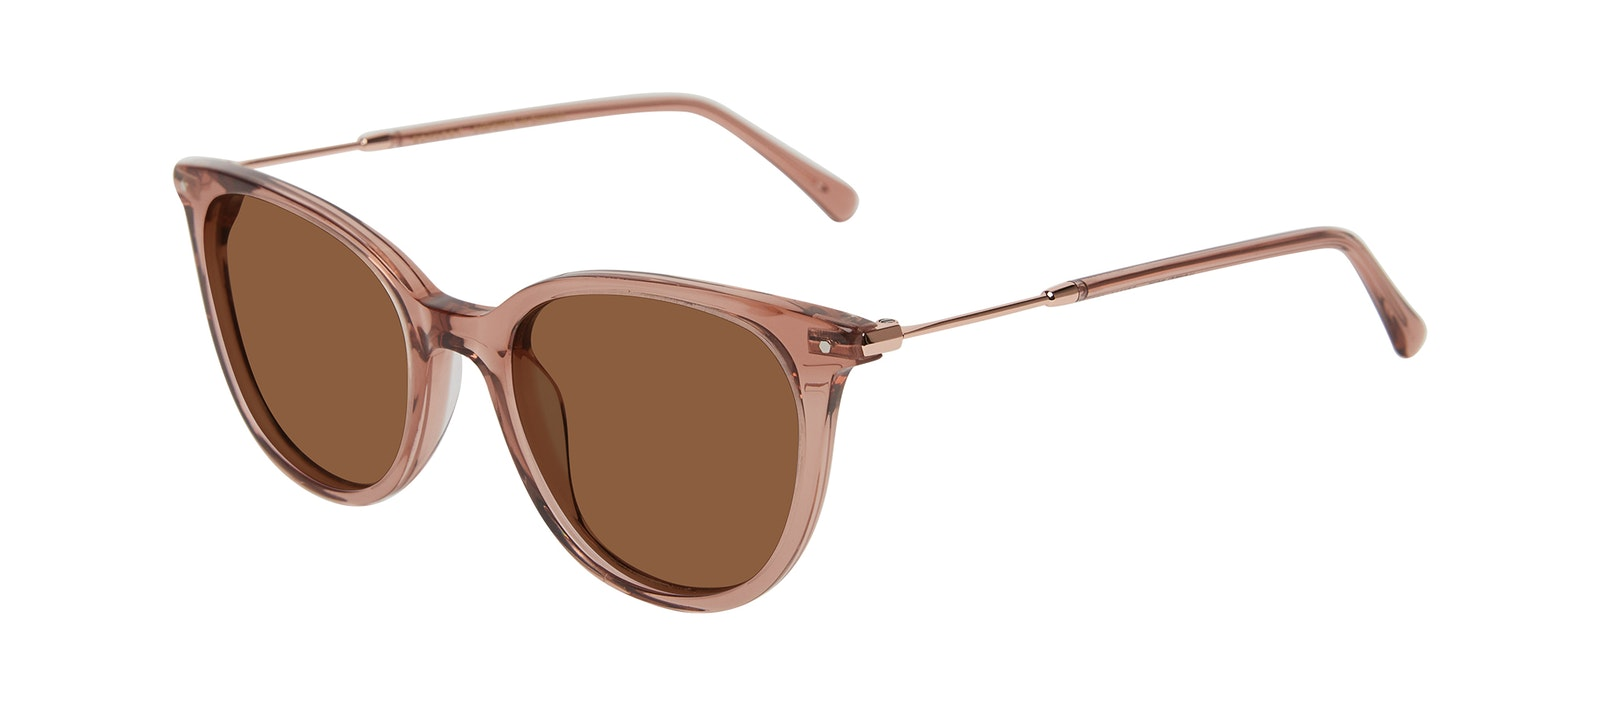 Affordable Fashion Glasses Square Sunglasses Women Wordly Rose Tilt